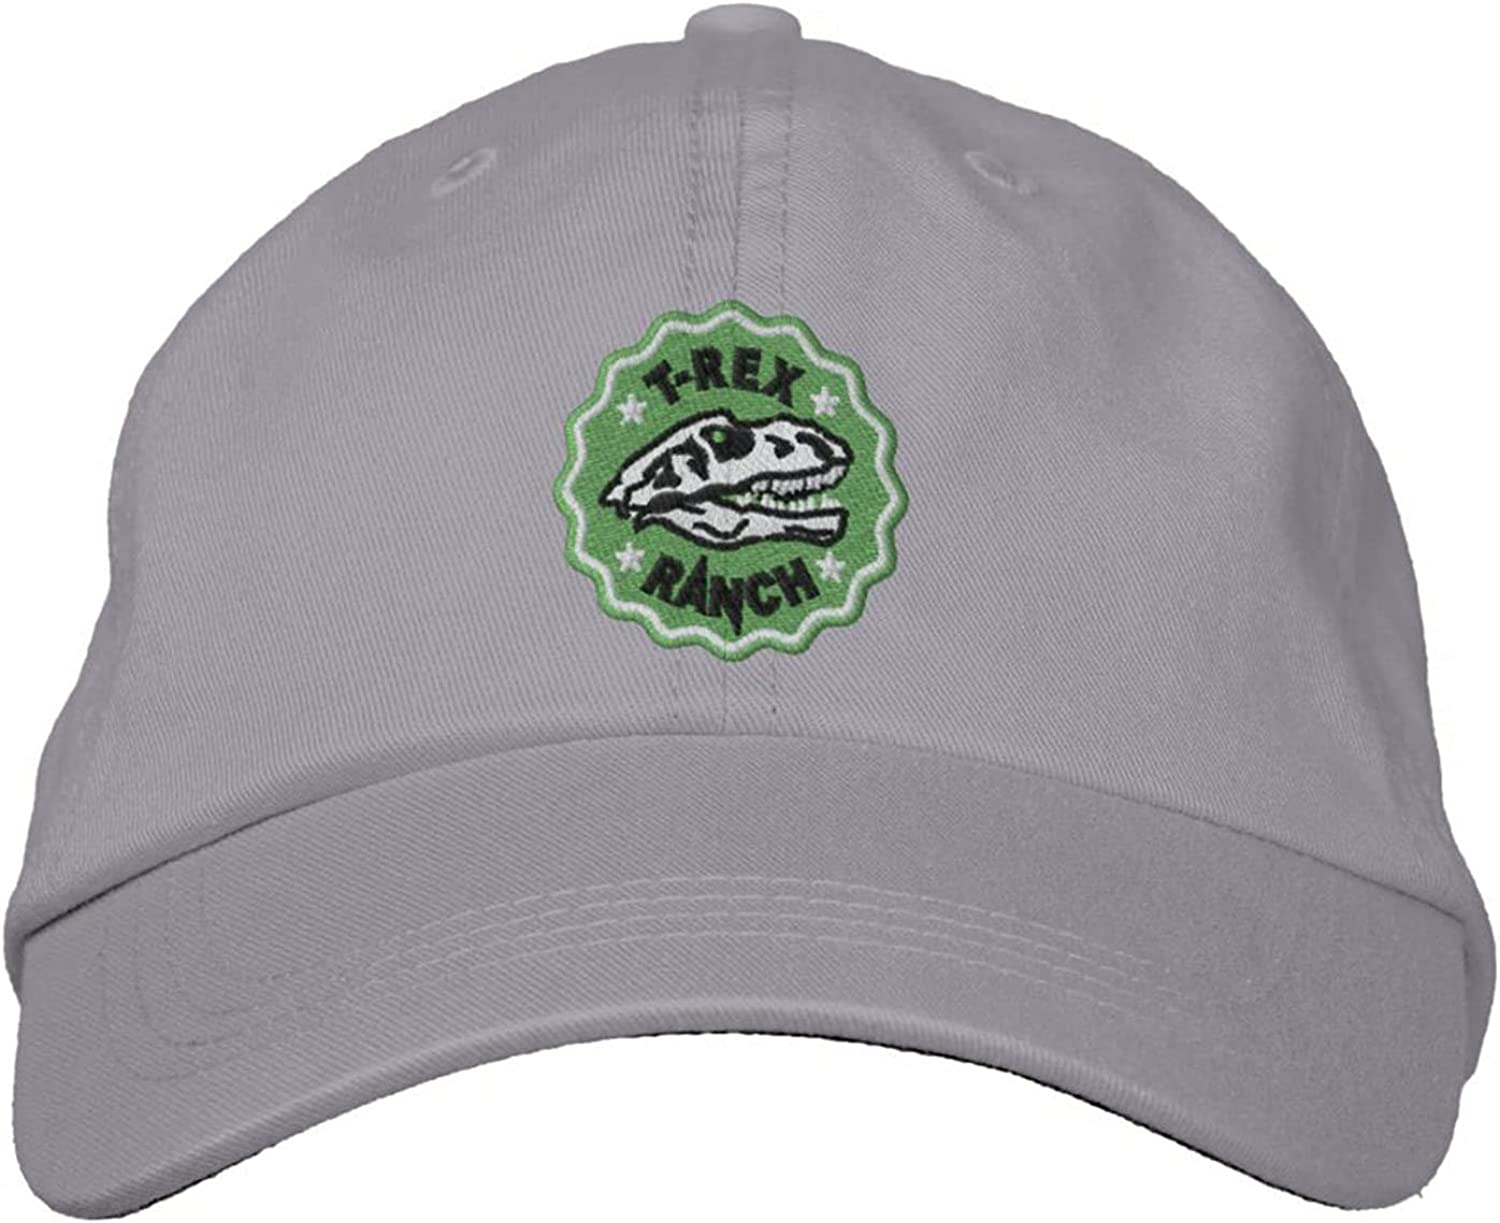 Embroidery Baseball Caps T-Rex Ranch Embroidered Caps Trucker Hat Dad Hats for Men & Women